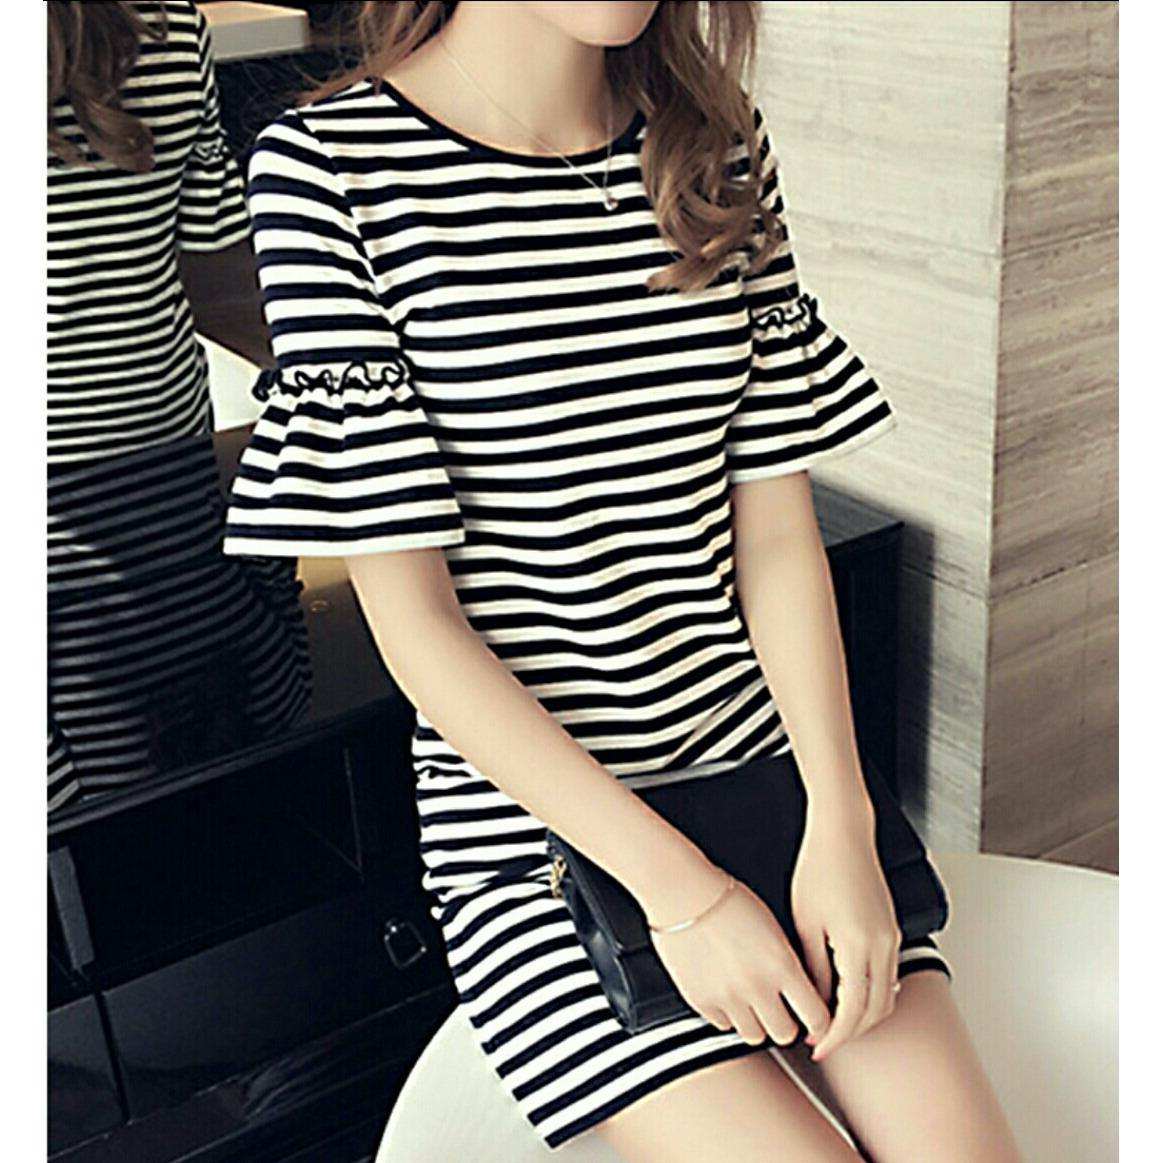 Buy Sell Cheapest Audy Dress Best Quality Product Deals